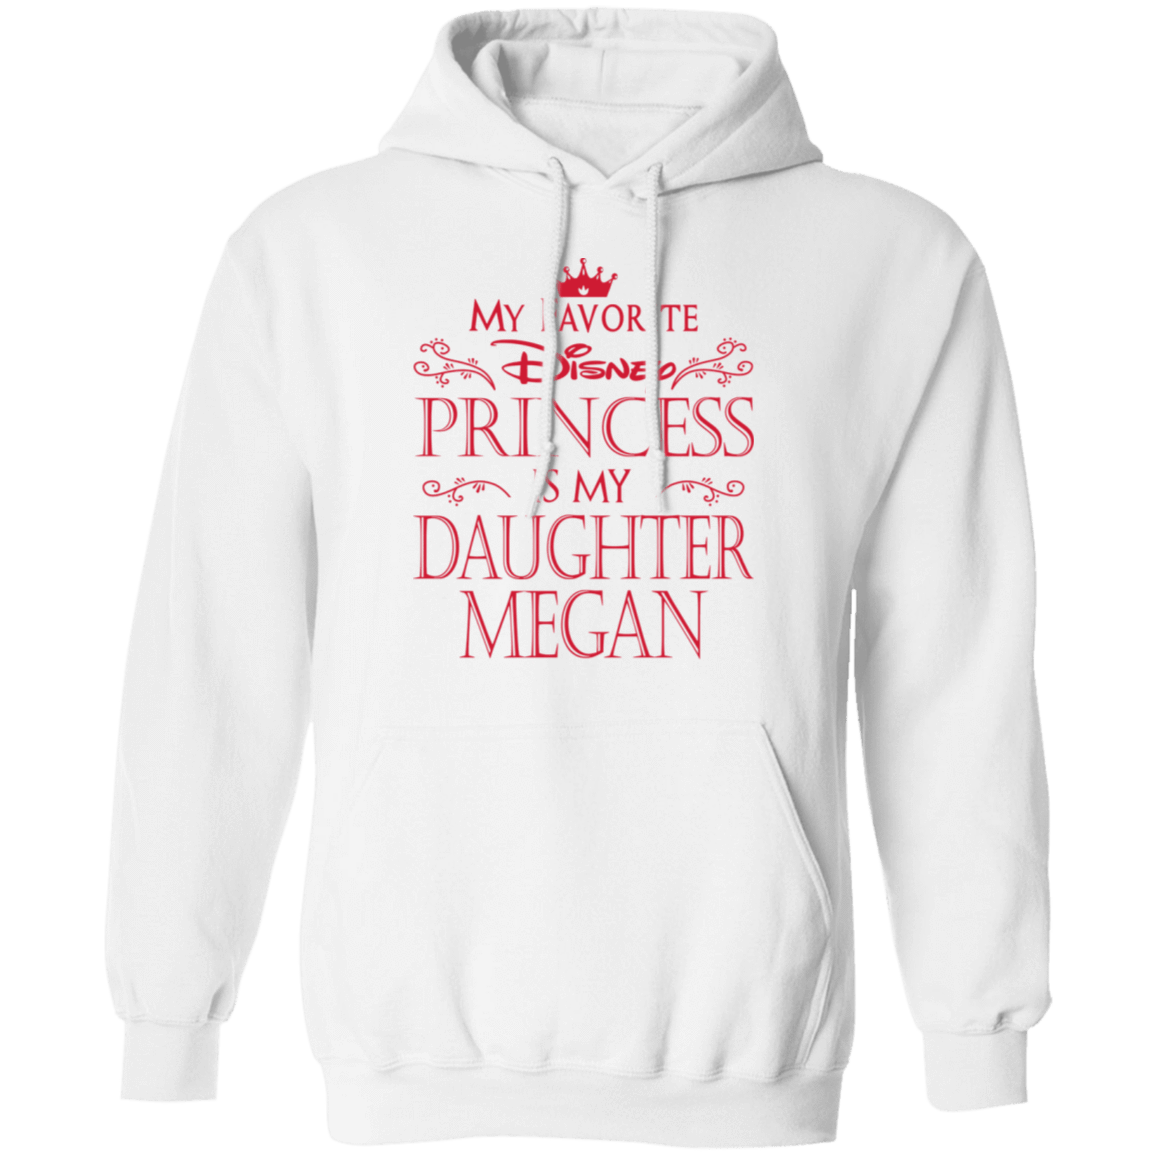 My Favorite Disney Princess Is My Daughter Megan T-Shirts, Hoodies, Tank 541-4744-81647388-23183 - Tee Ript